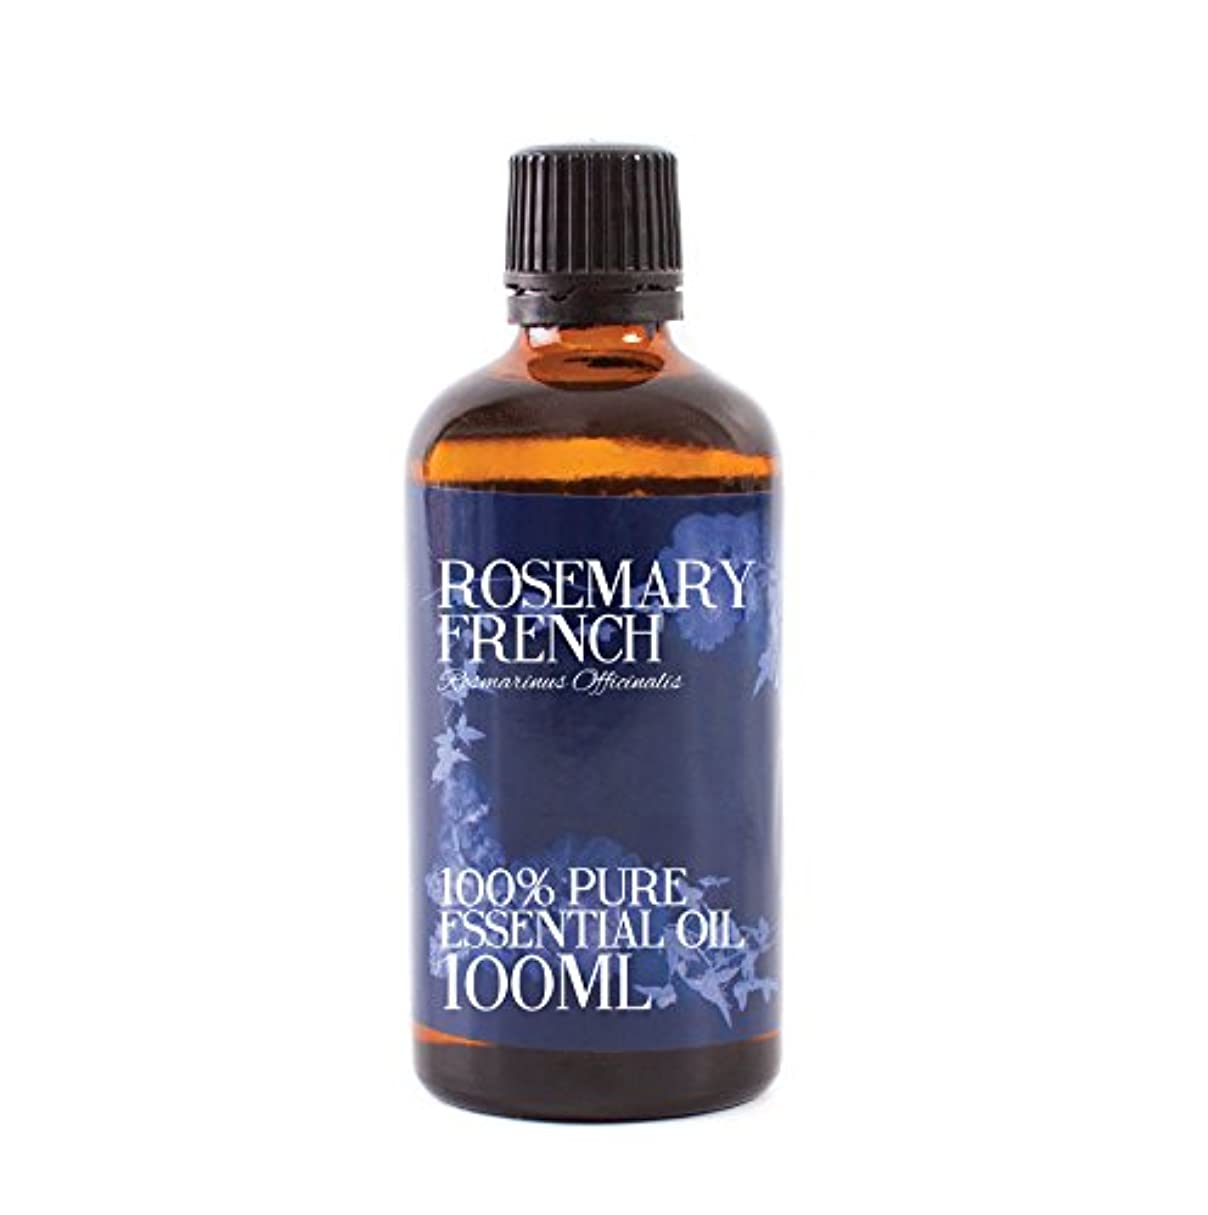 最大のエンジニアリング賃金Mystic Moments | Rosemary French Essential Oil - 100ml - 100% Pure